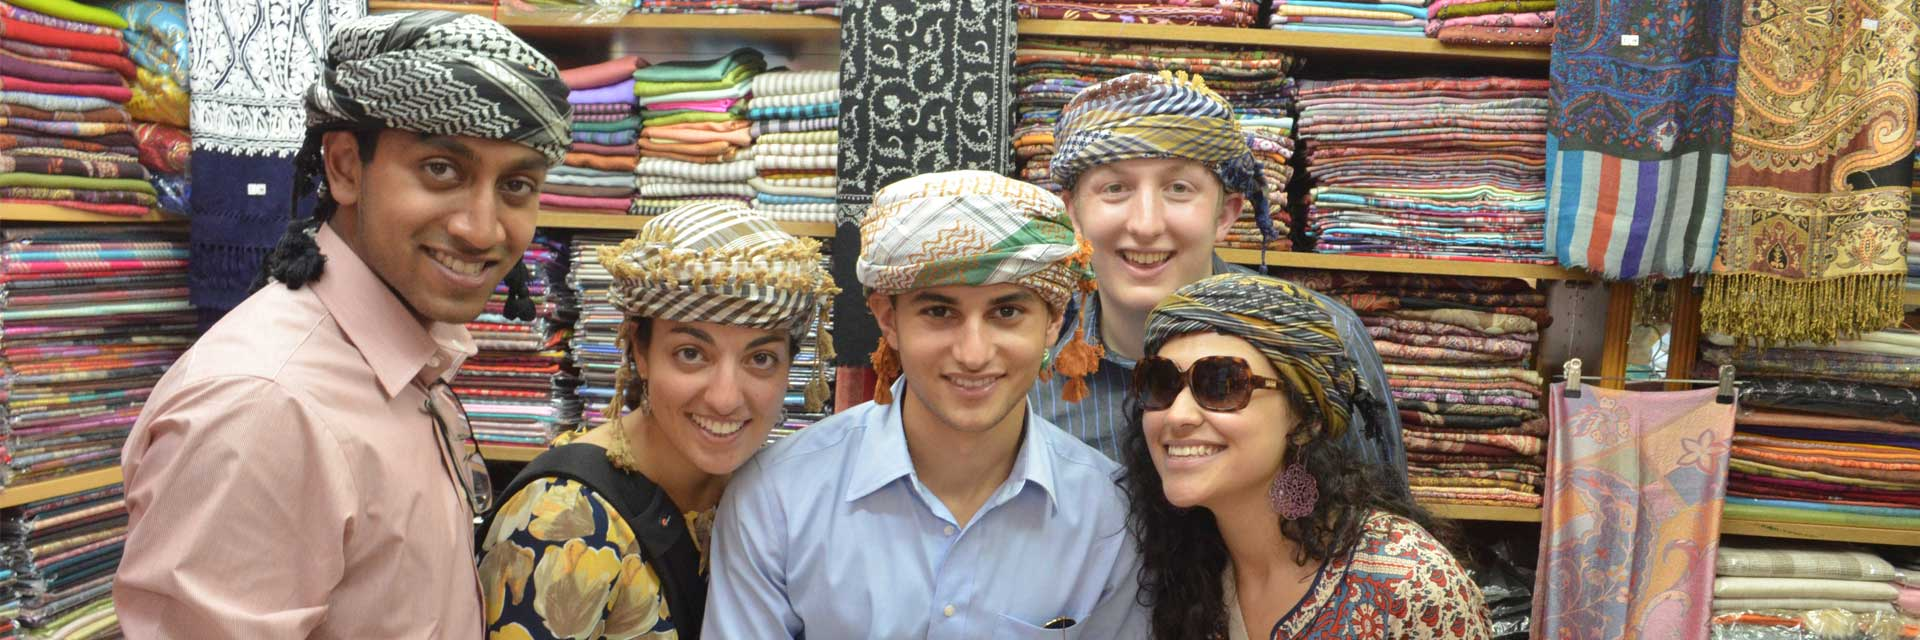 2013-Alumni-Trying-on-Turbans-in-Souq-Mutrah-Muscat-Oman